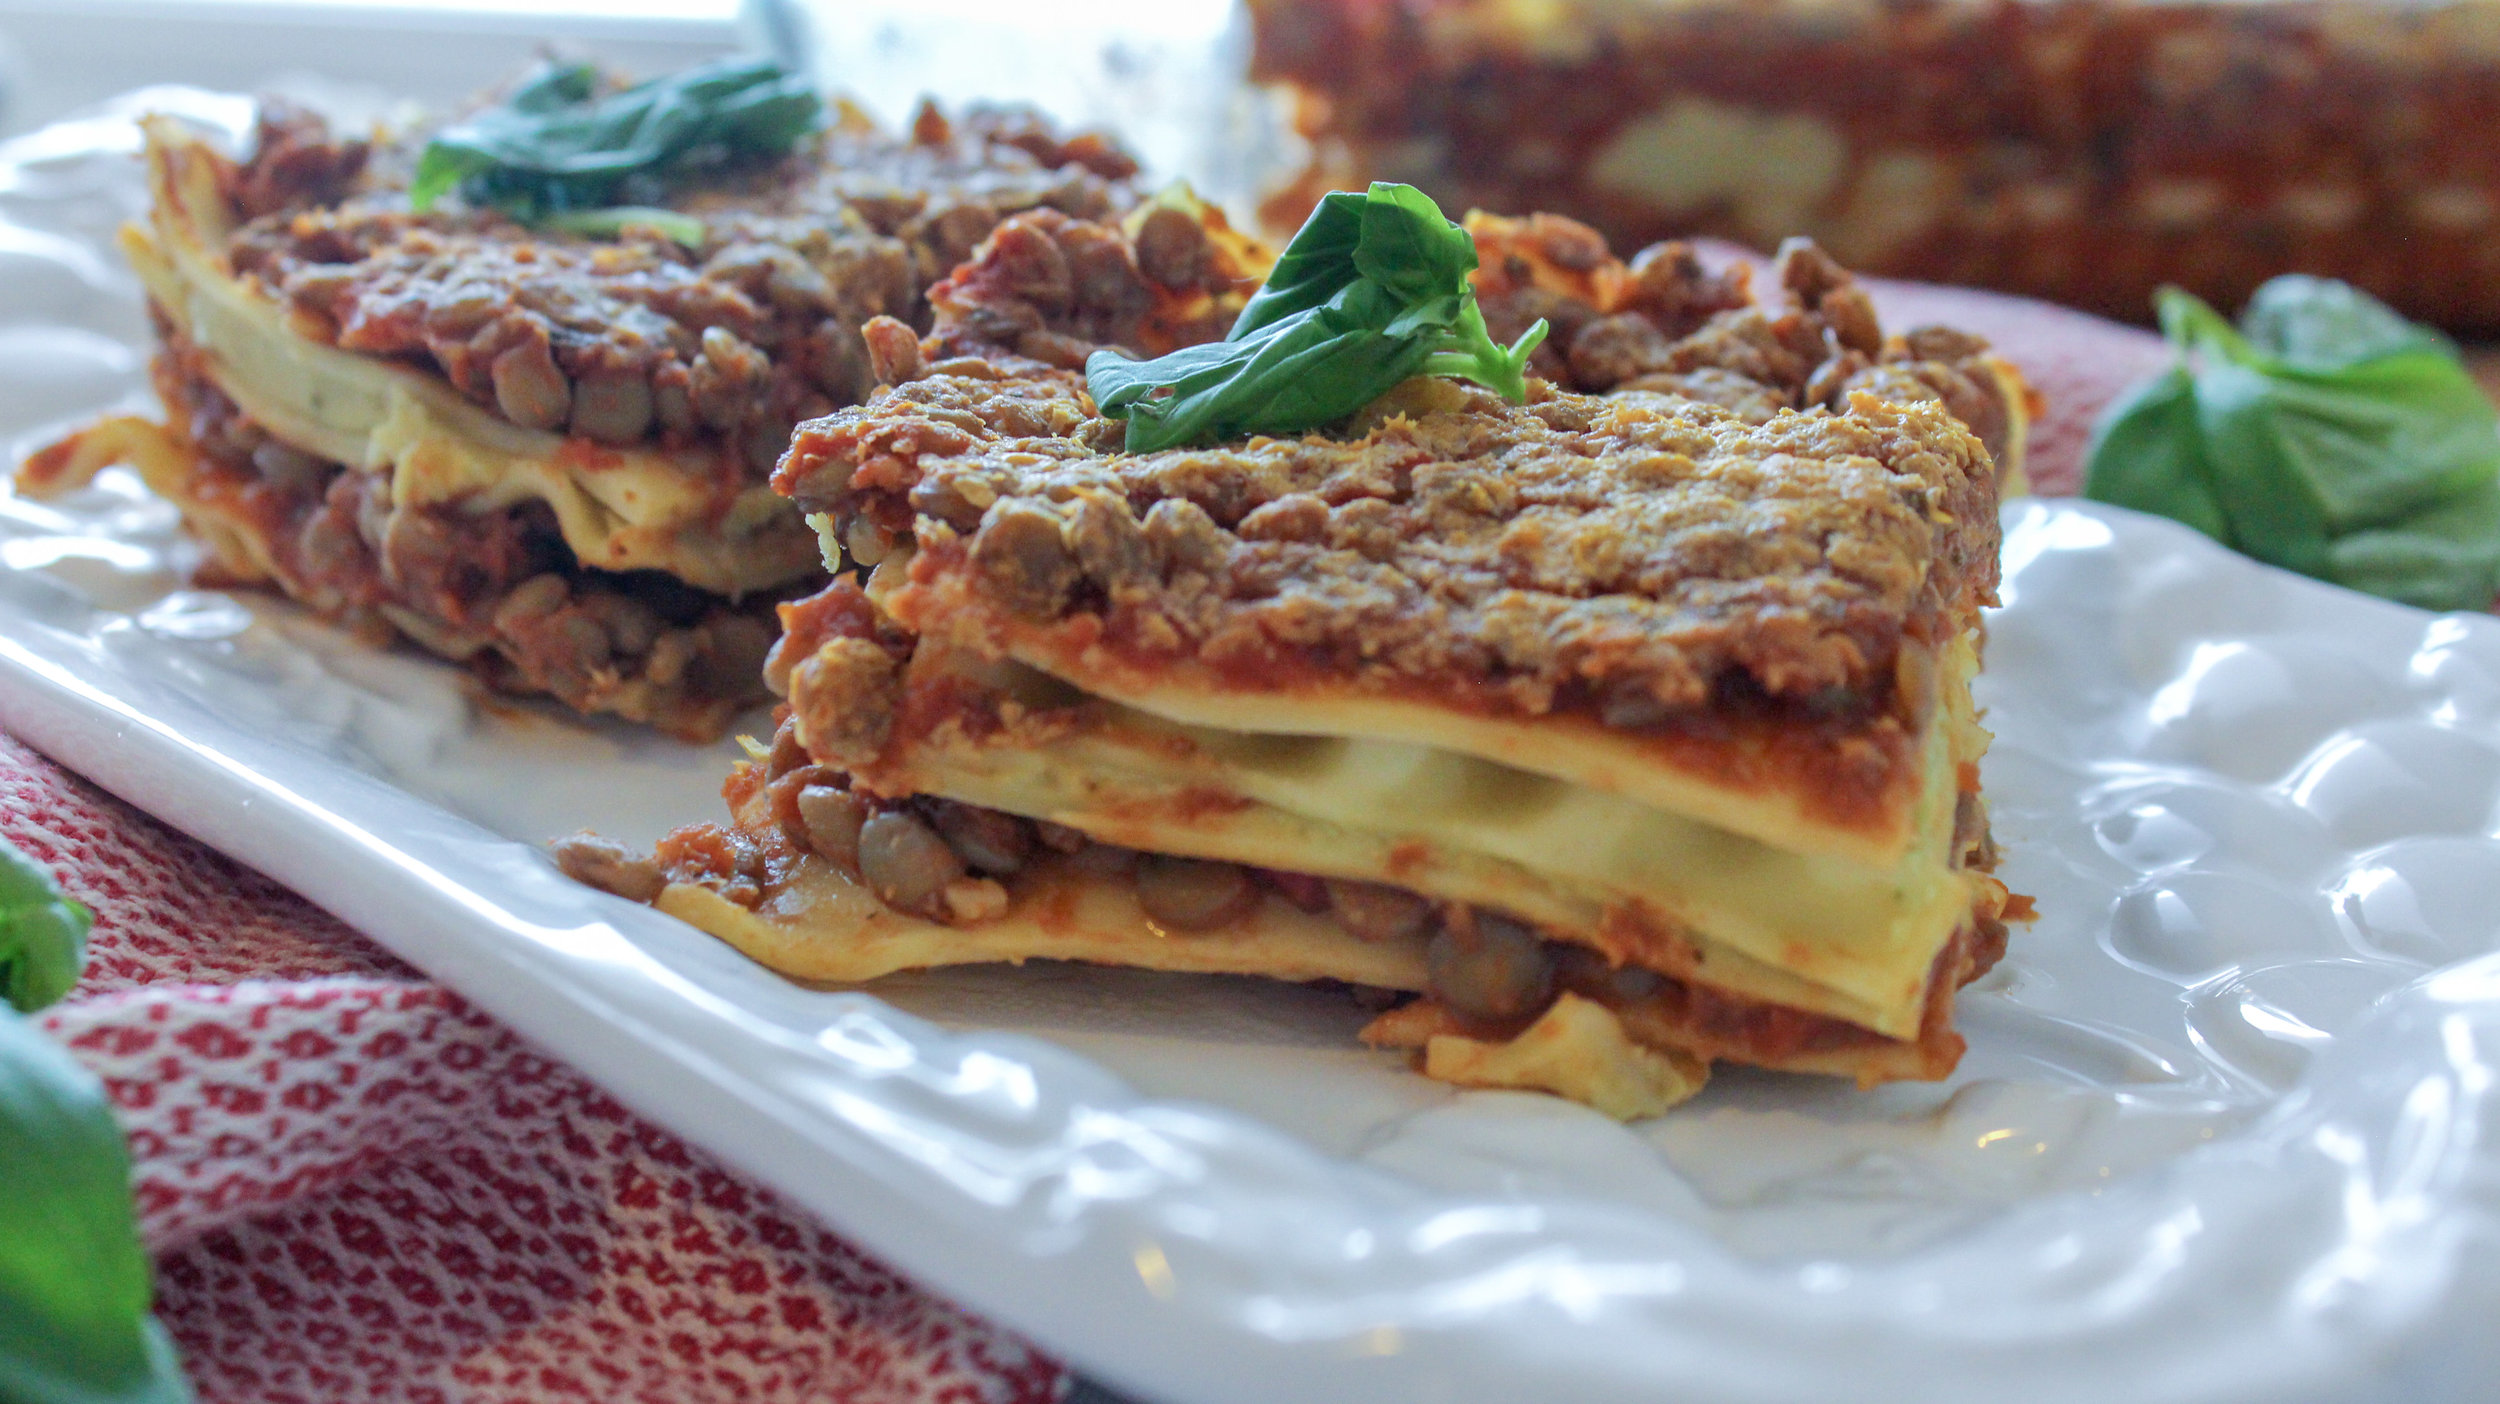 Hearty, high protein and delicious vegan lasagna. Only 10 ingredients! This will fill you up and make you feel good all at the same time. The bright flavors in the pesto ricotta add a perfect counter balance to the savory lentil pasta sauce. The flavors in this dish balance together perfectly, making a healthy, mouth watering meal. #easy #highprotein #vegan #lasagna #dairyfree